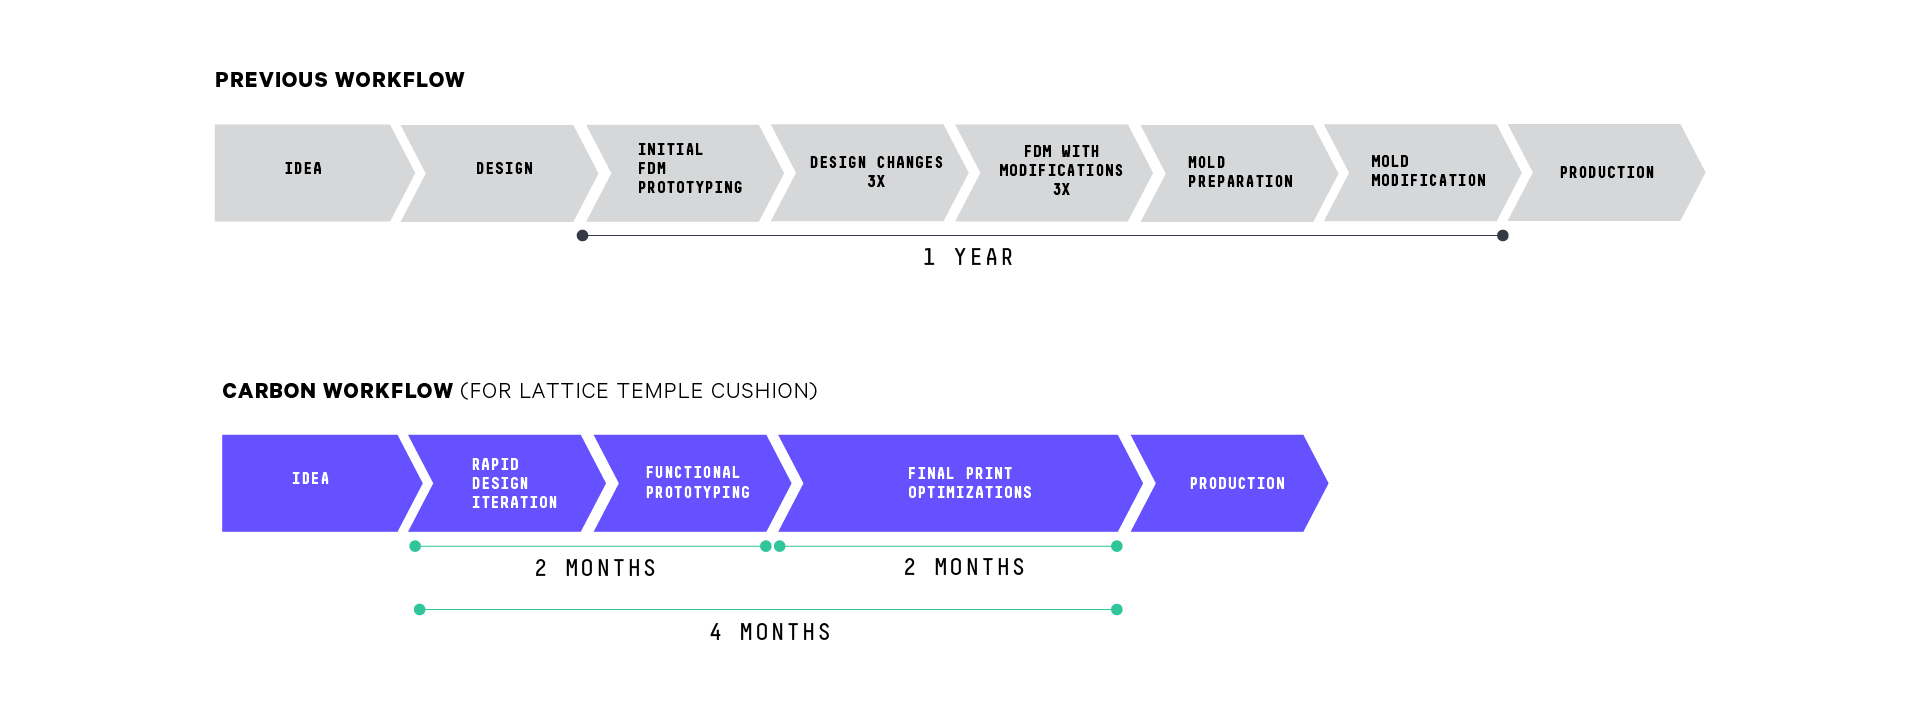 JINS x Carbon workflow compared to previous workflow